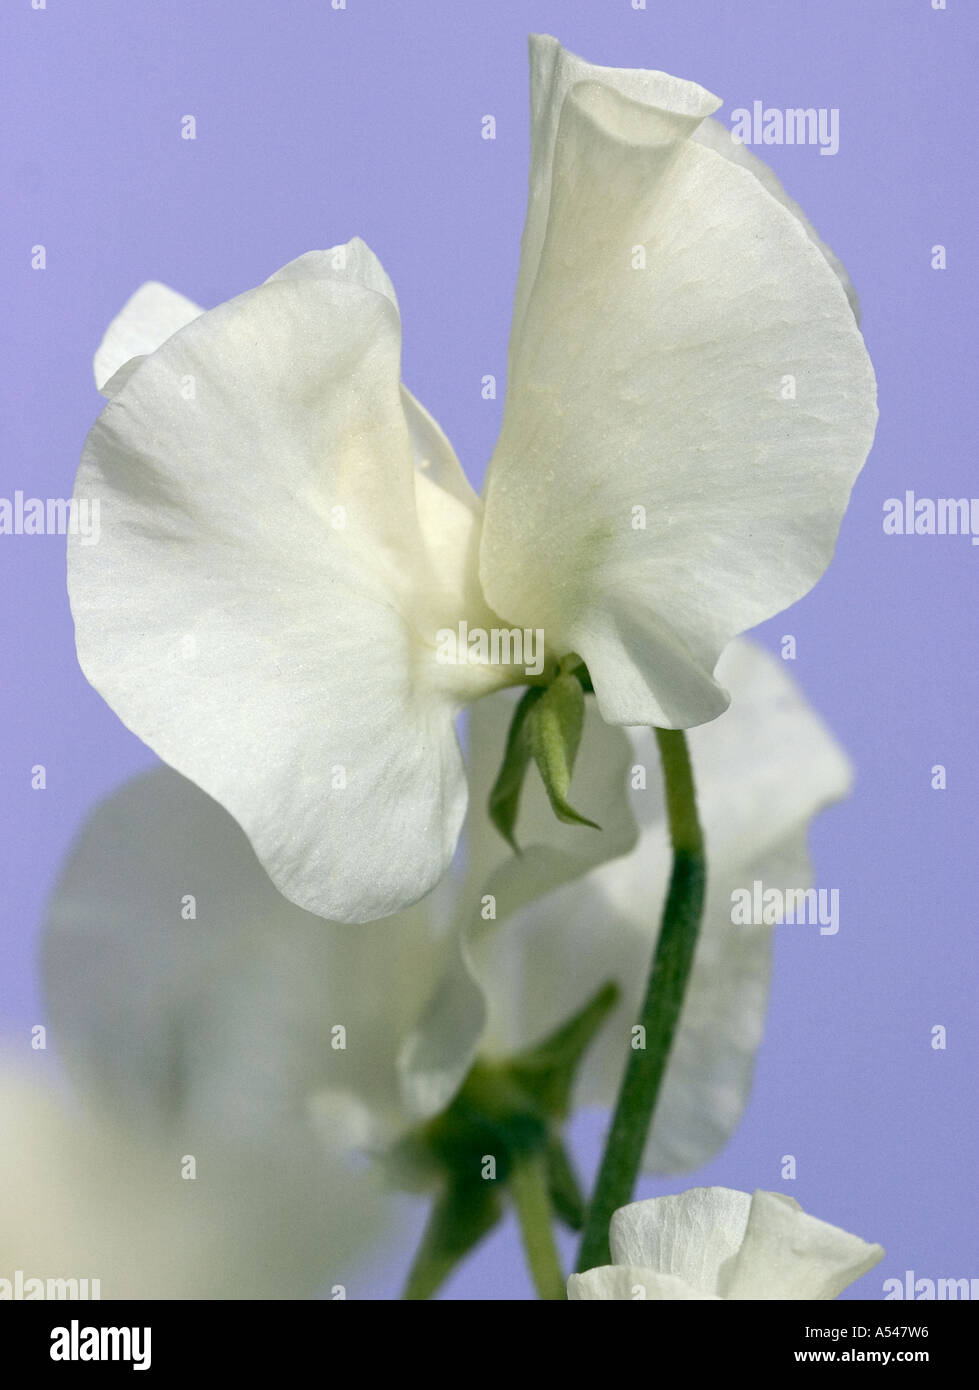 A close up of white sweet pea flowers stock photo 6395349 alamy a close up of white sweet pea flowers mightylinksfo Gallery